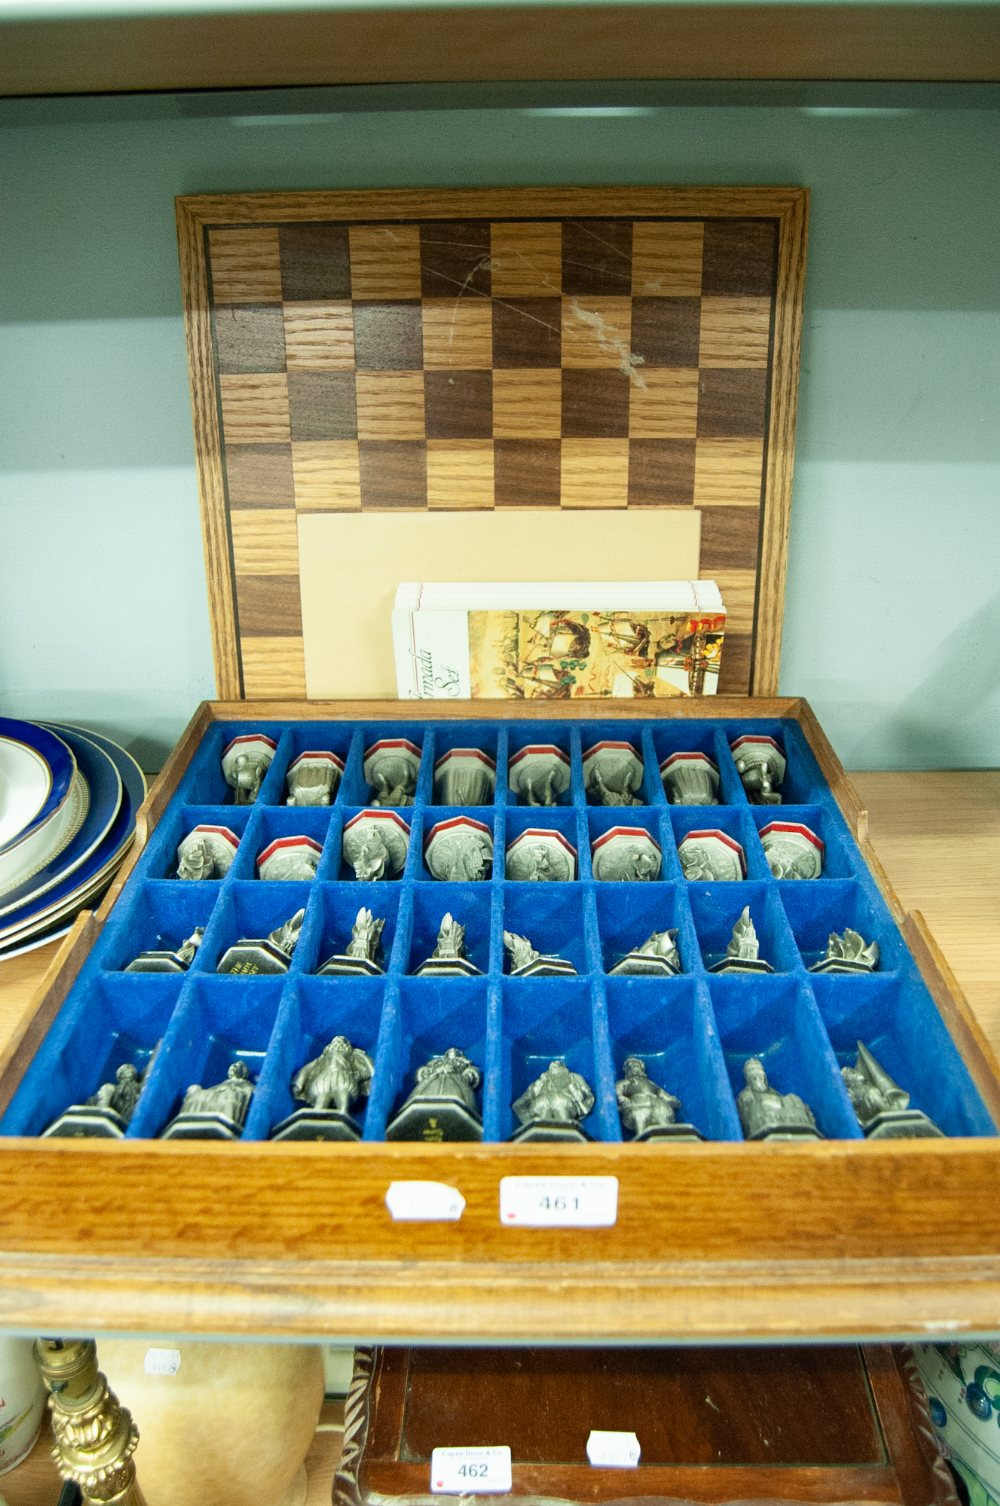 Lot 461 - 'THE ARMADA' CHESS SET BY DANBURY MINT, 32 PIECES IN PEWTER HOUSED IN A FITTED BOARD WITH